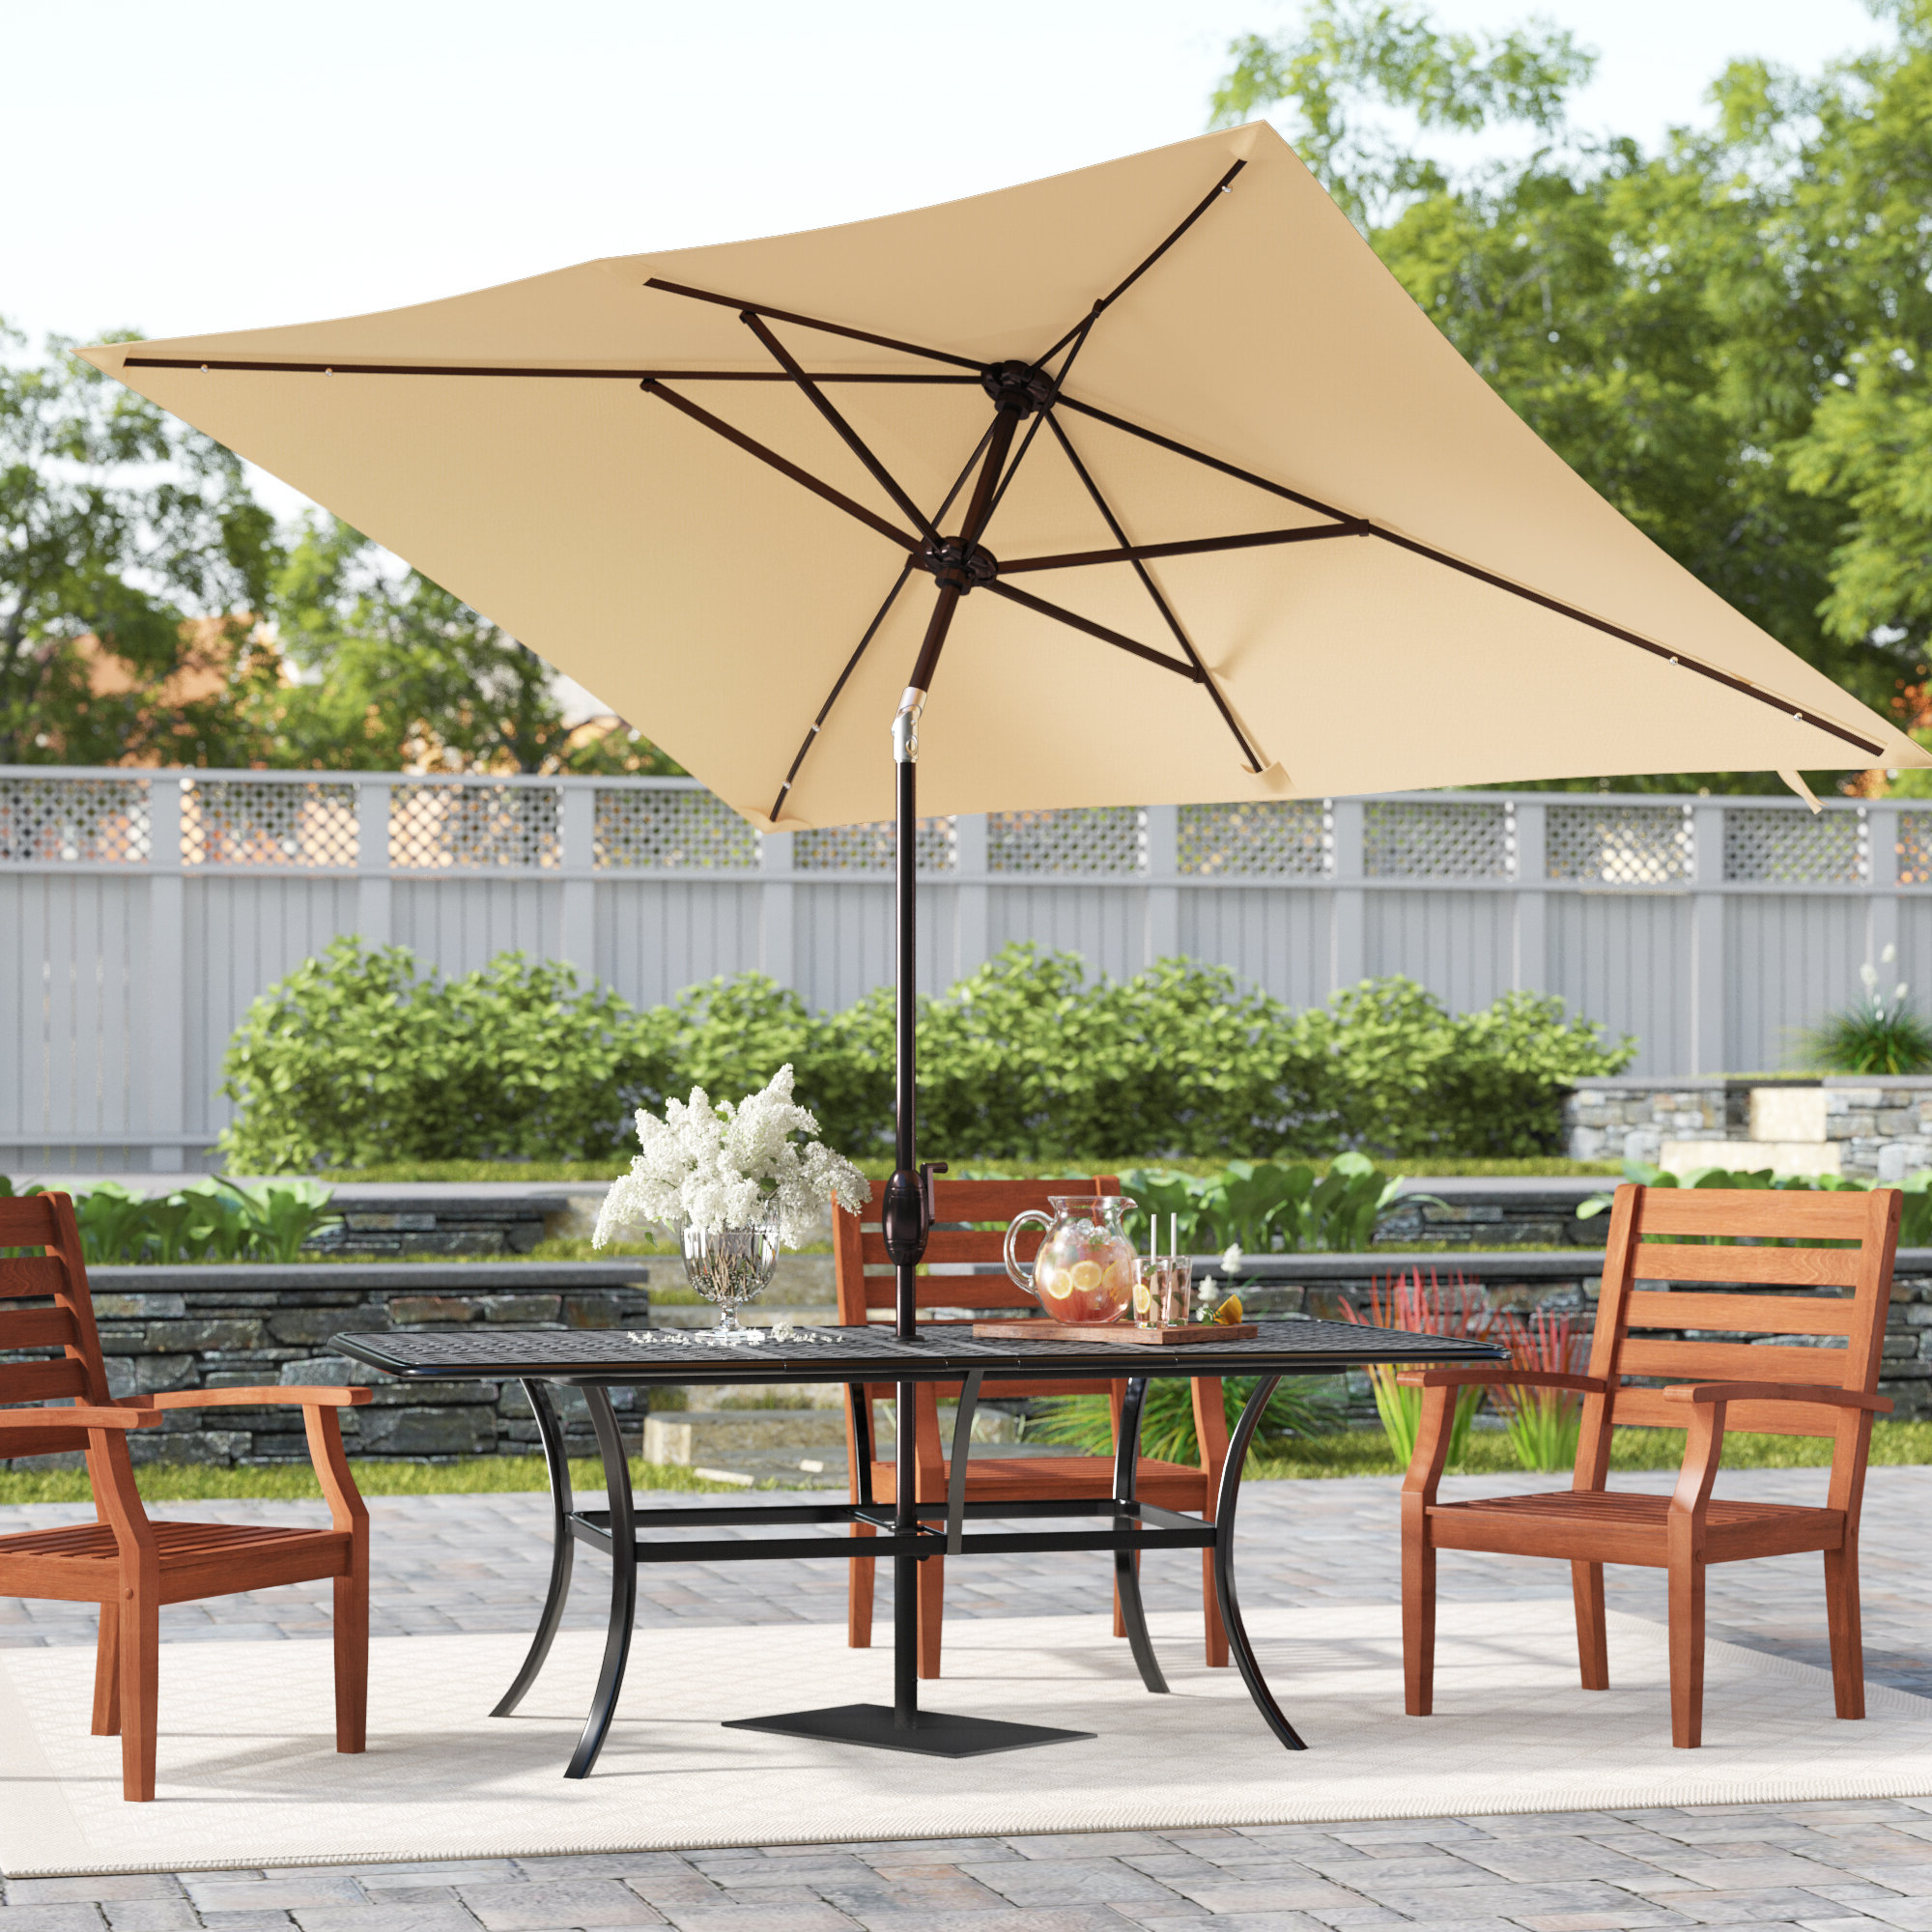 Newest Kelton Market Umbrellas Intended For Jerrell 10' X 7' Rectangular Market Umbrella (Gallery 14 of 20)